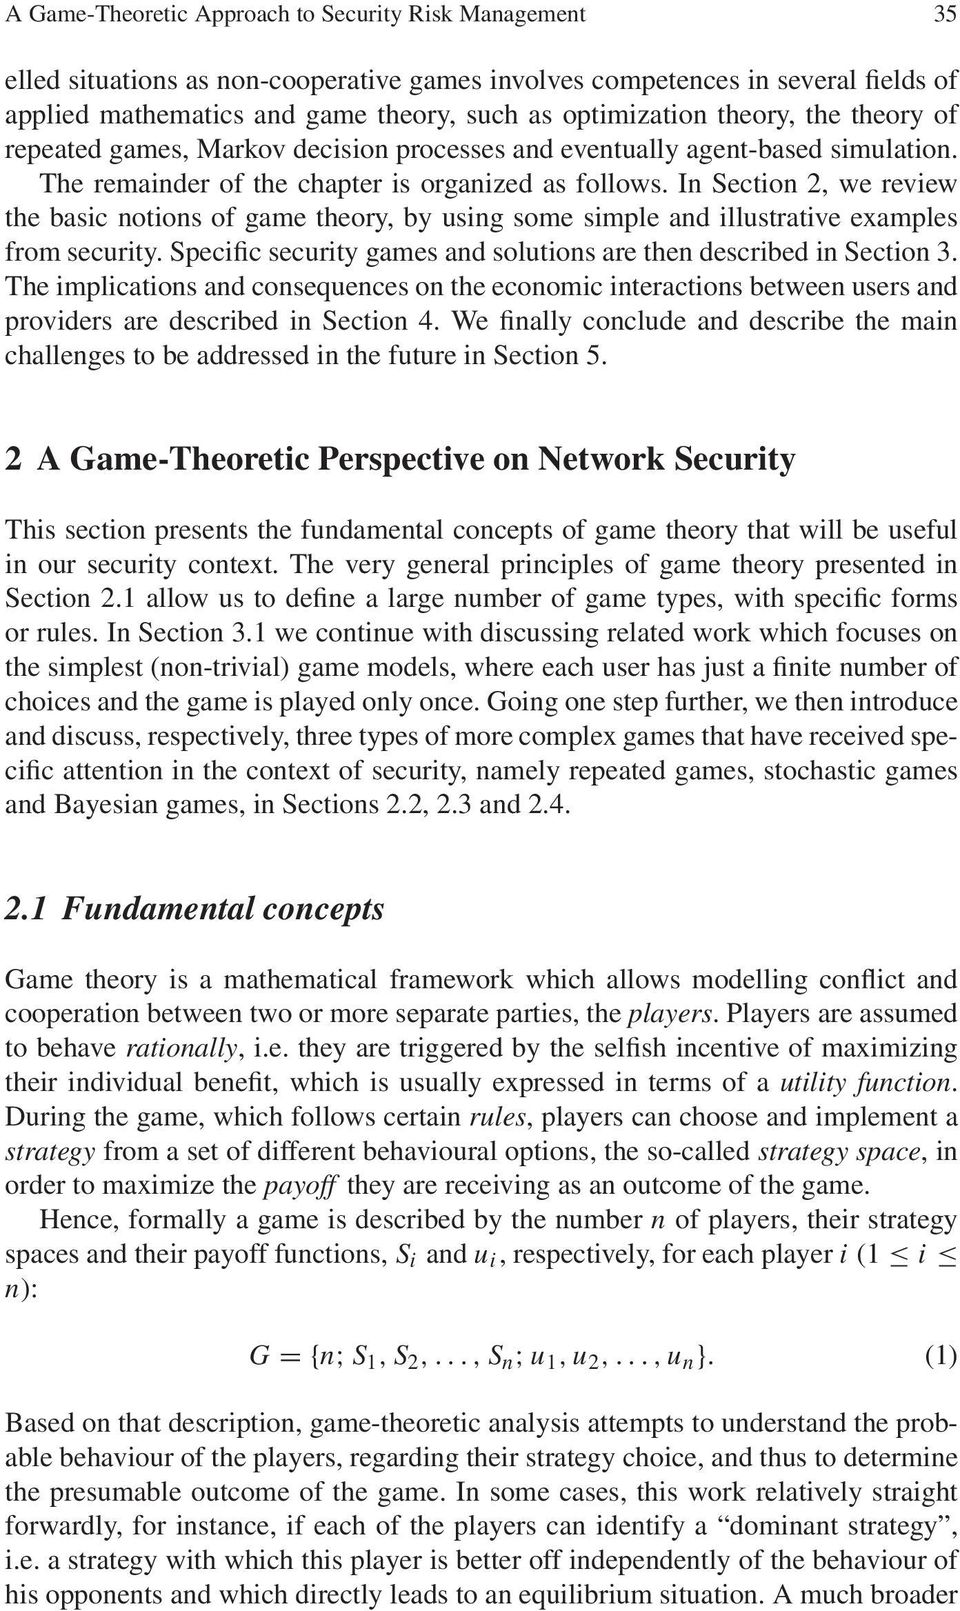 In Section 2, we review the basic notions of game theory, by using some simple and illustrative examples from security. Specific security games and solutions are then described in Section 3.